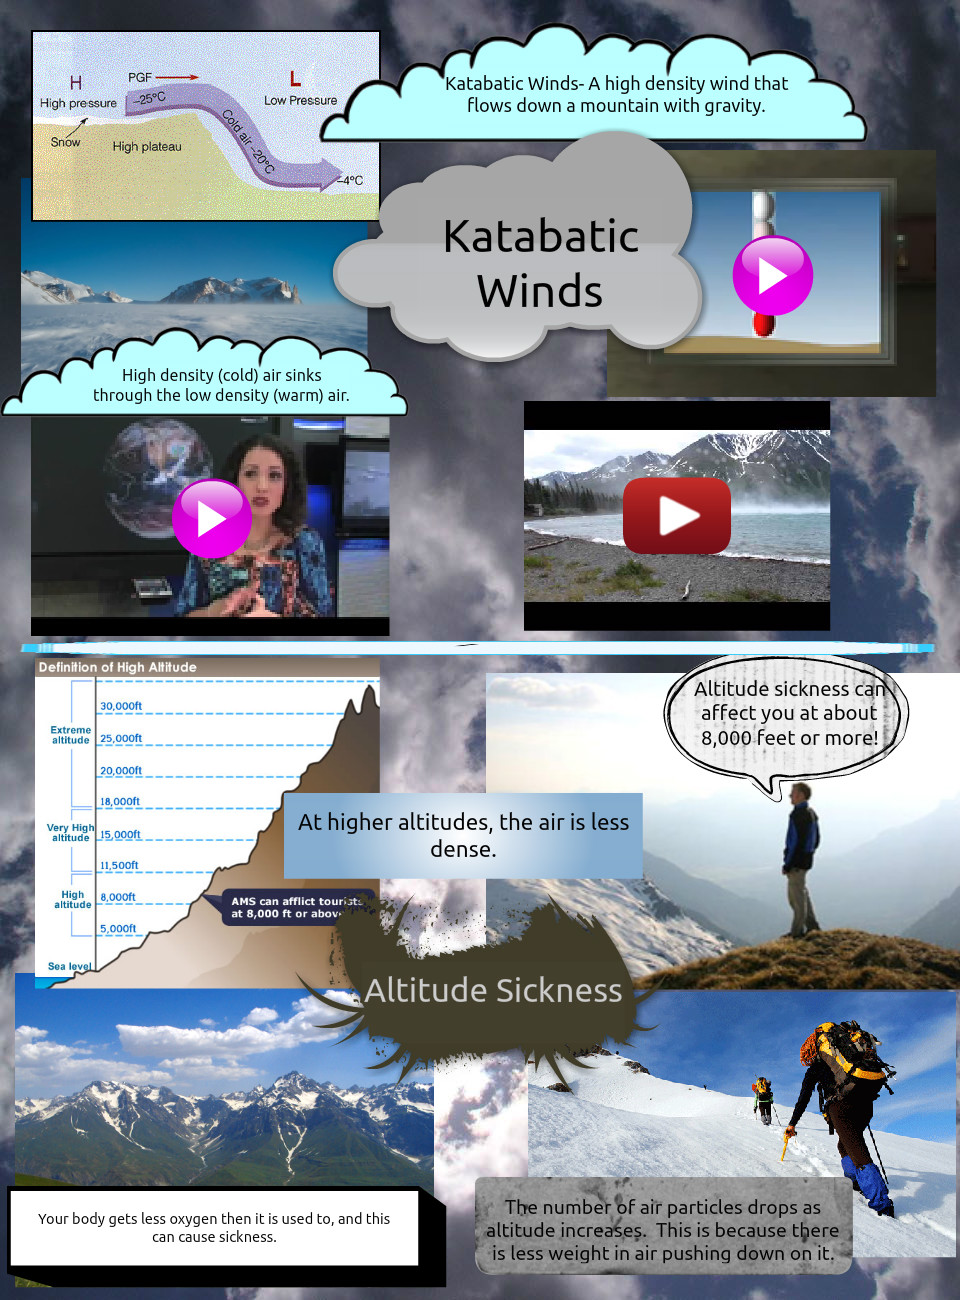 Katabatic Winds/Altitude Sickness